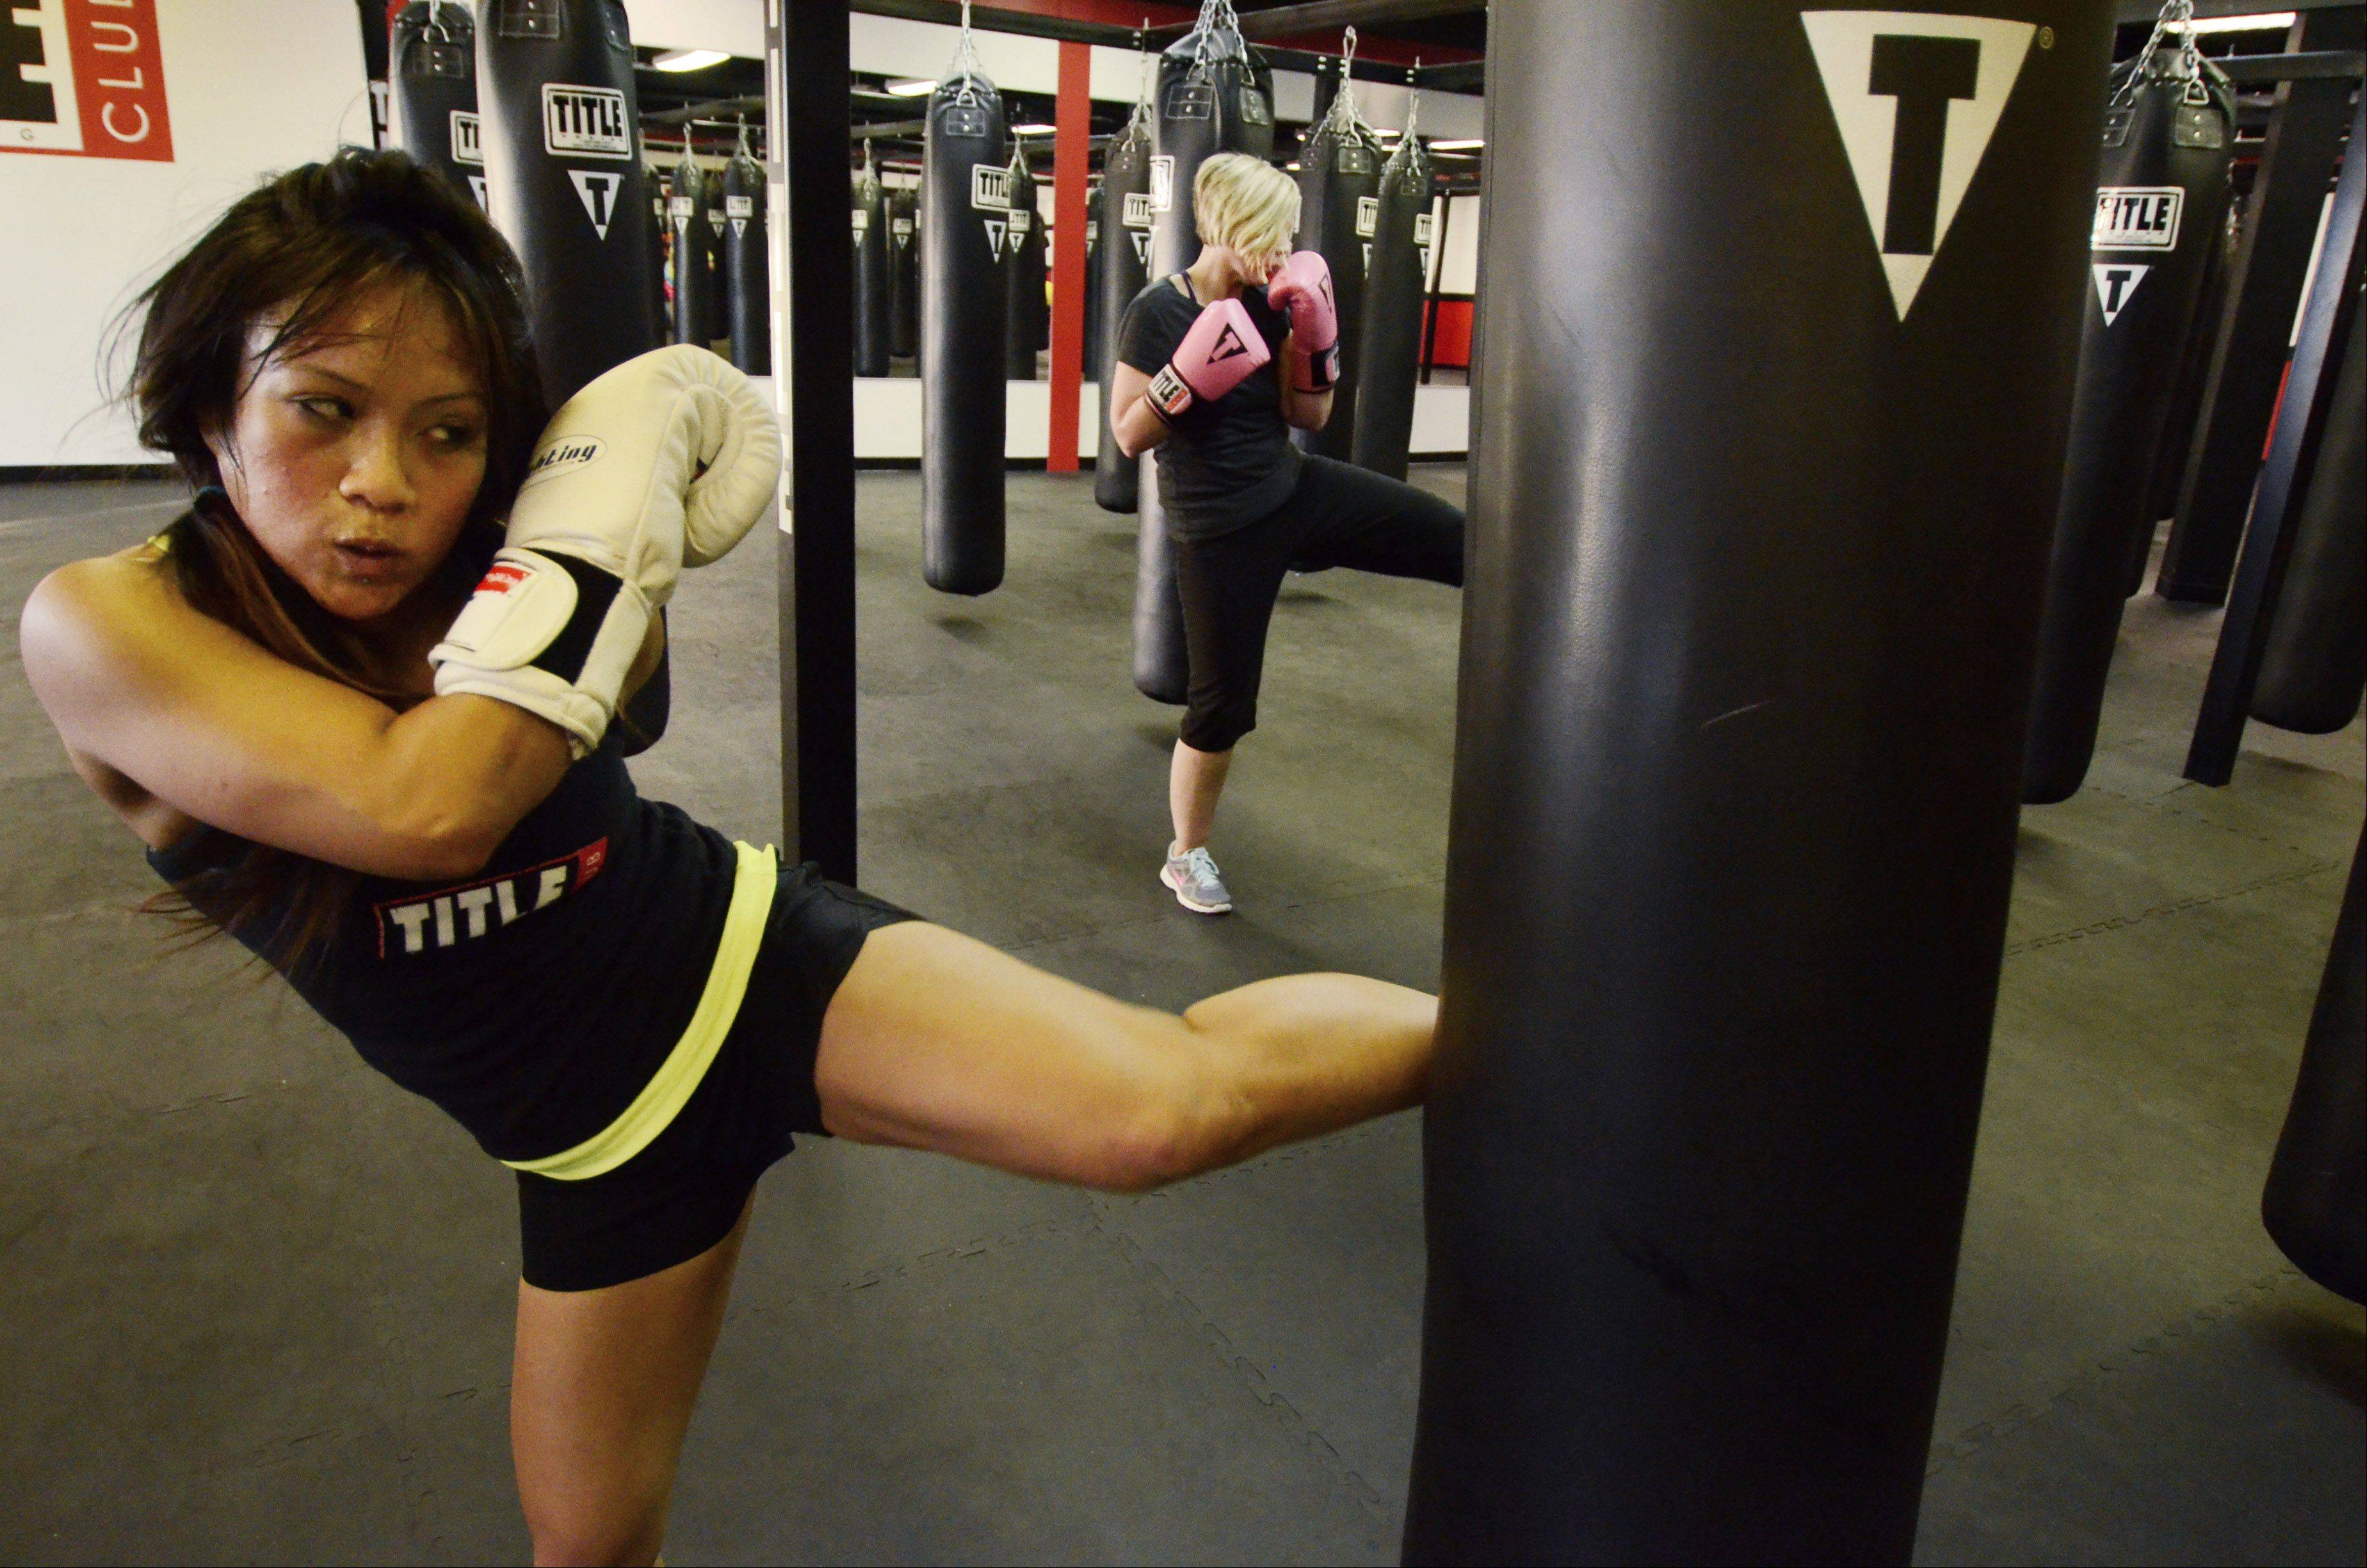 Trainer Cher Nicolas works out at Title Boxing Club in Schaumburg.